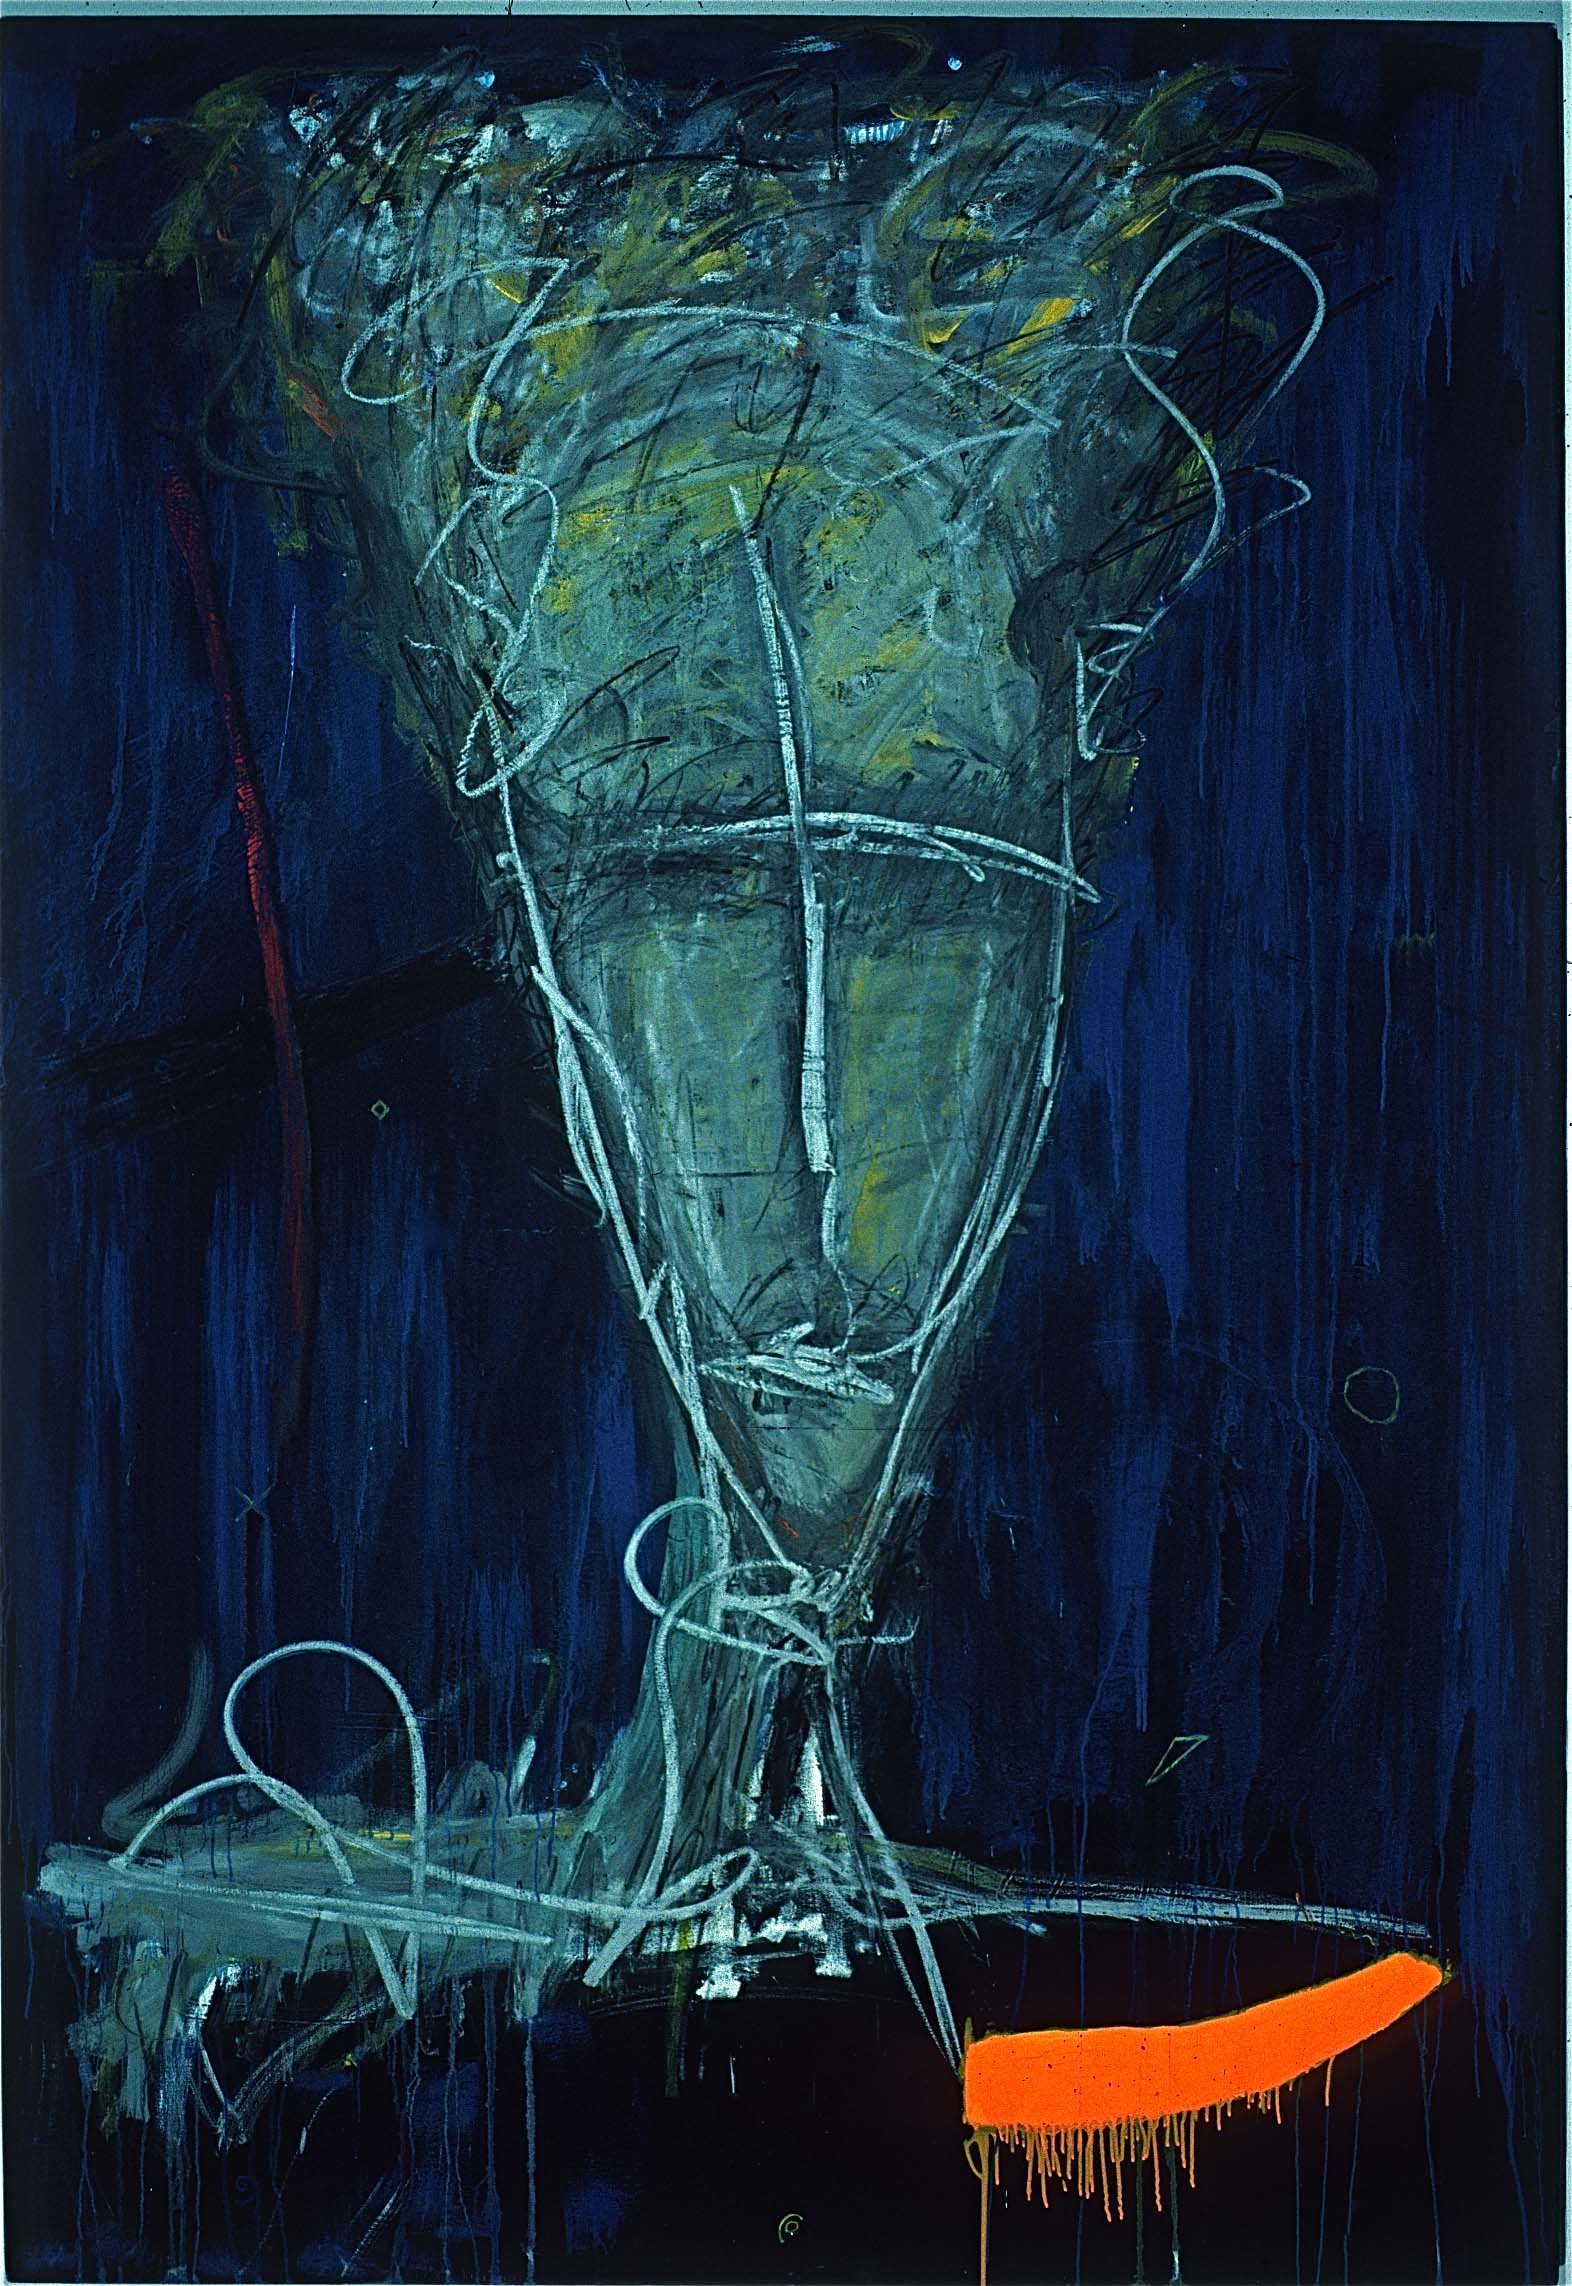 66w x 96h Acrylic on Canvas © Art Spellings 1985